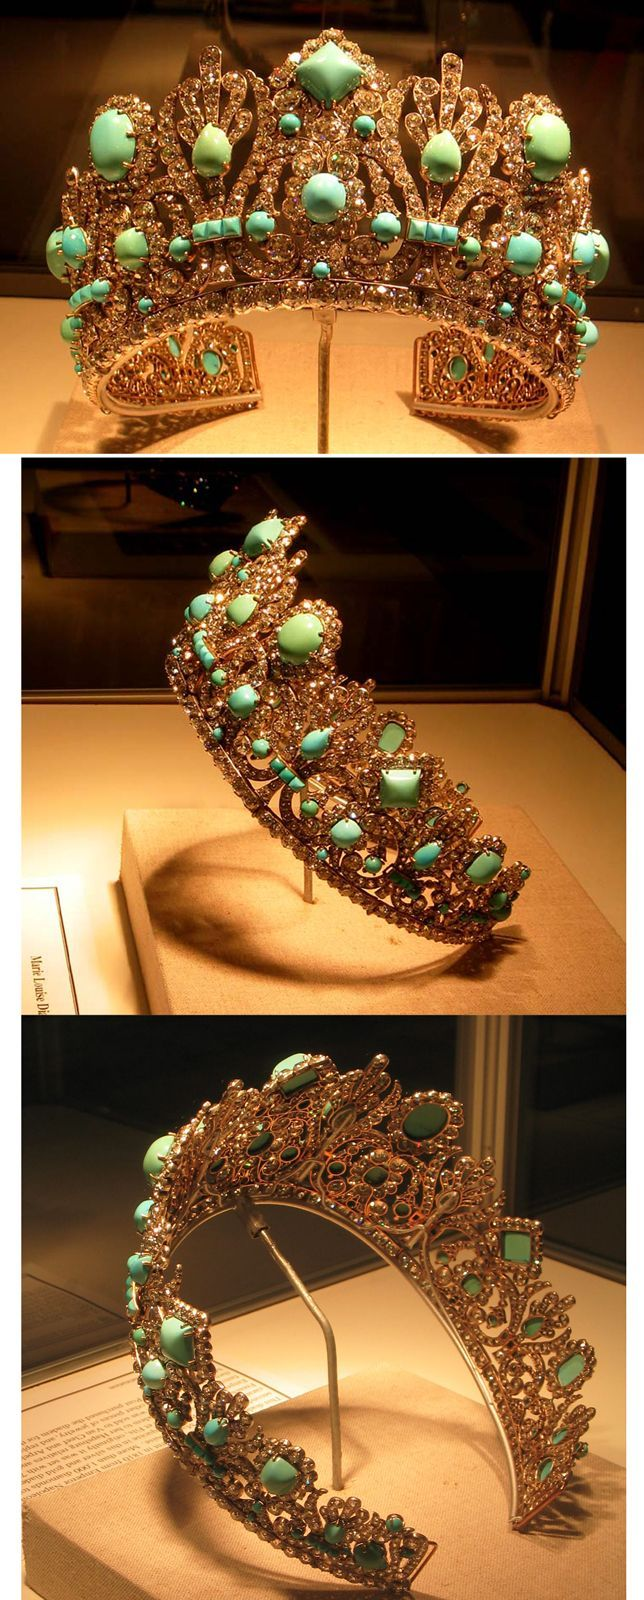 This wedding presentfrom Emperor Napoleon I to Empress Marie Louise his second wife Originally, was fitted with 79 emeralds and the current 1000 diamonds that total 700 carats Altered in 1952 by Van Cleef and Arpels who replaced the emeralds with Persia